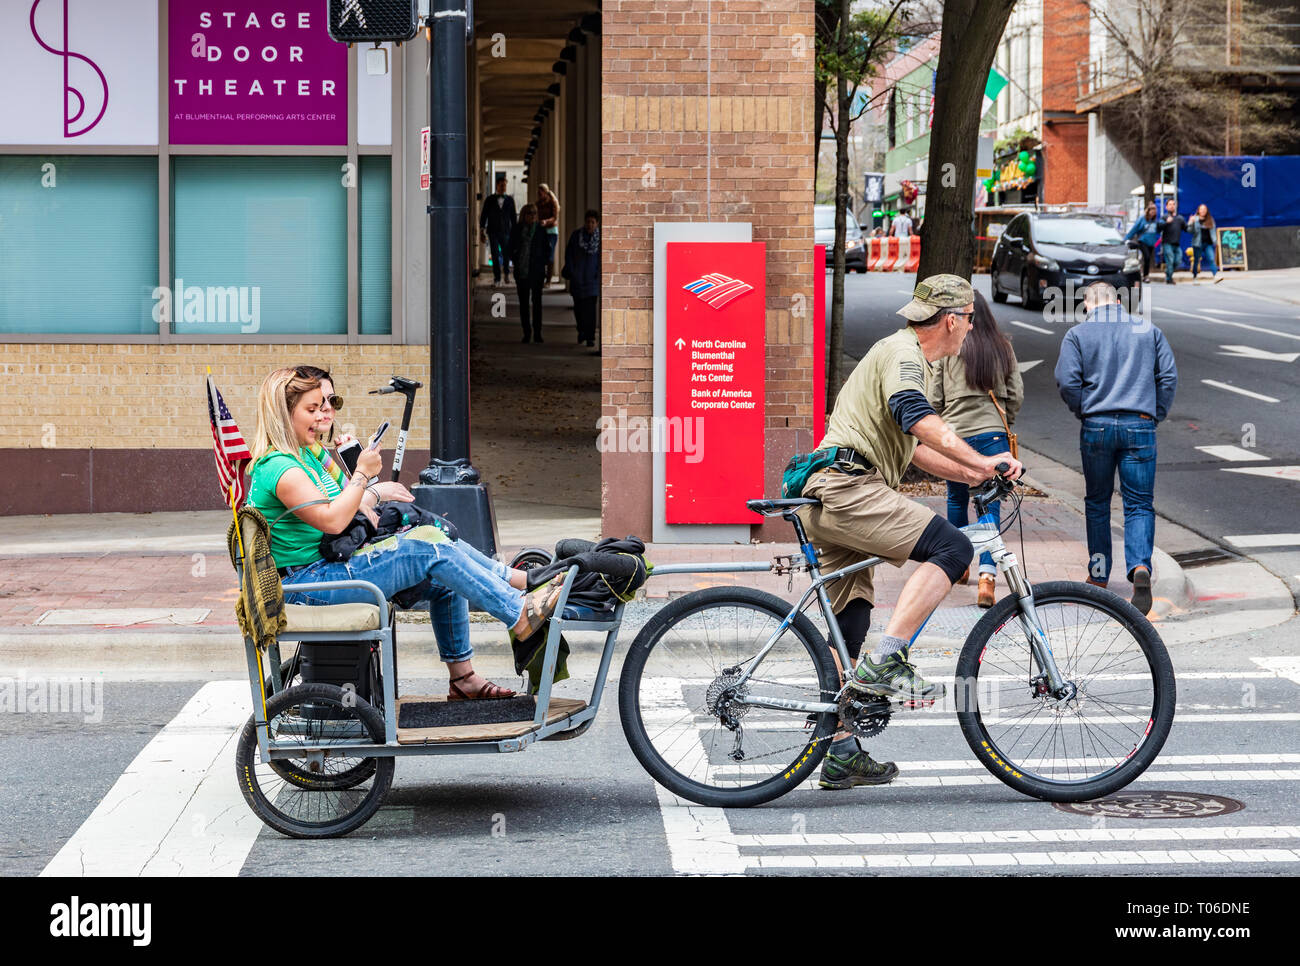 CHARLOTTE, NC, USA-3/16/19: Two young women look at smart phones while riding in a bicycle towed cart in uptown Charlotte. Stock Photo